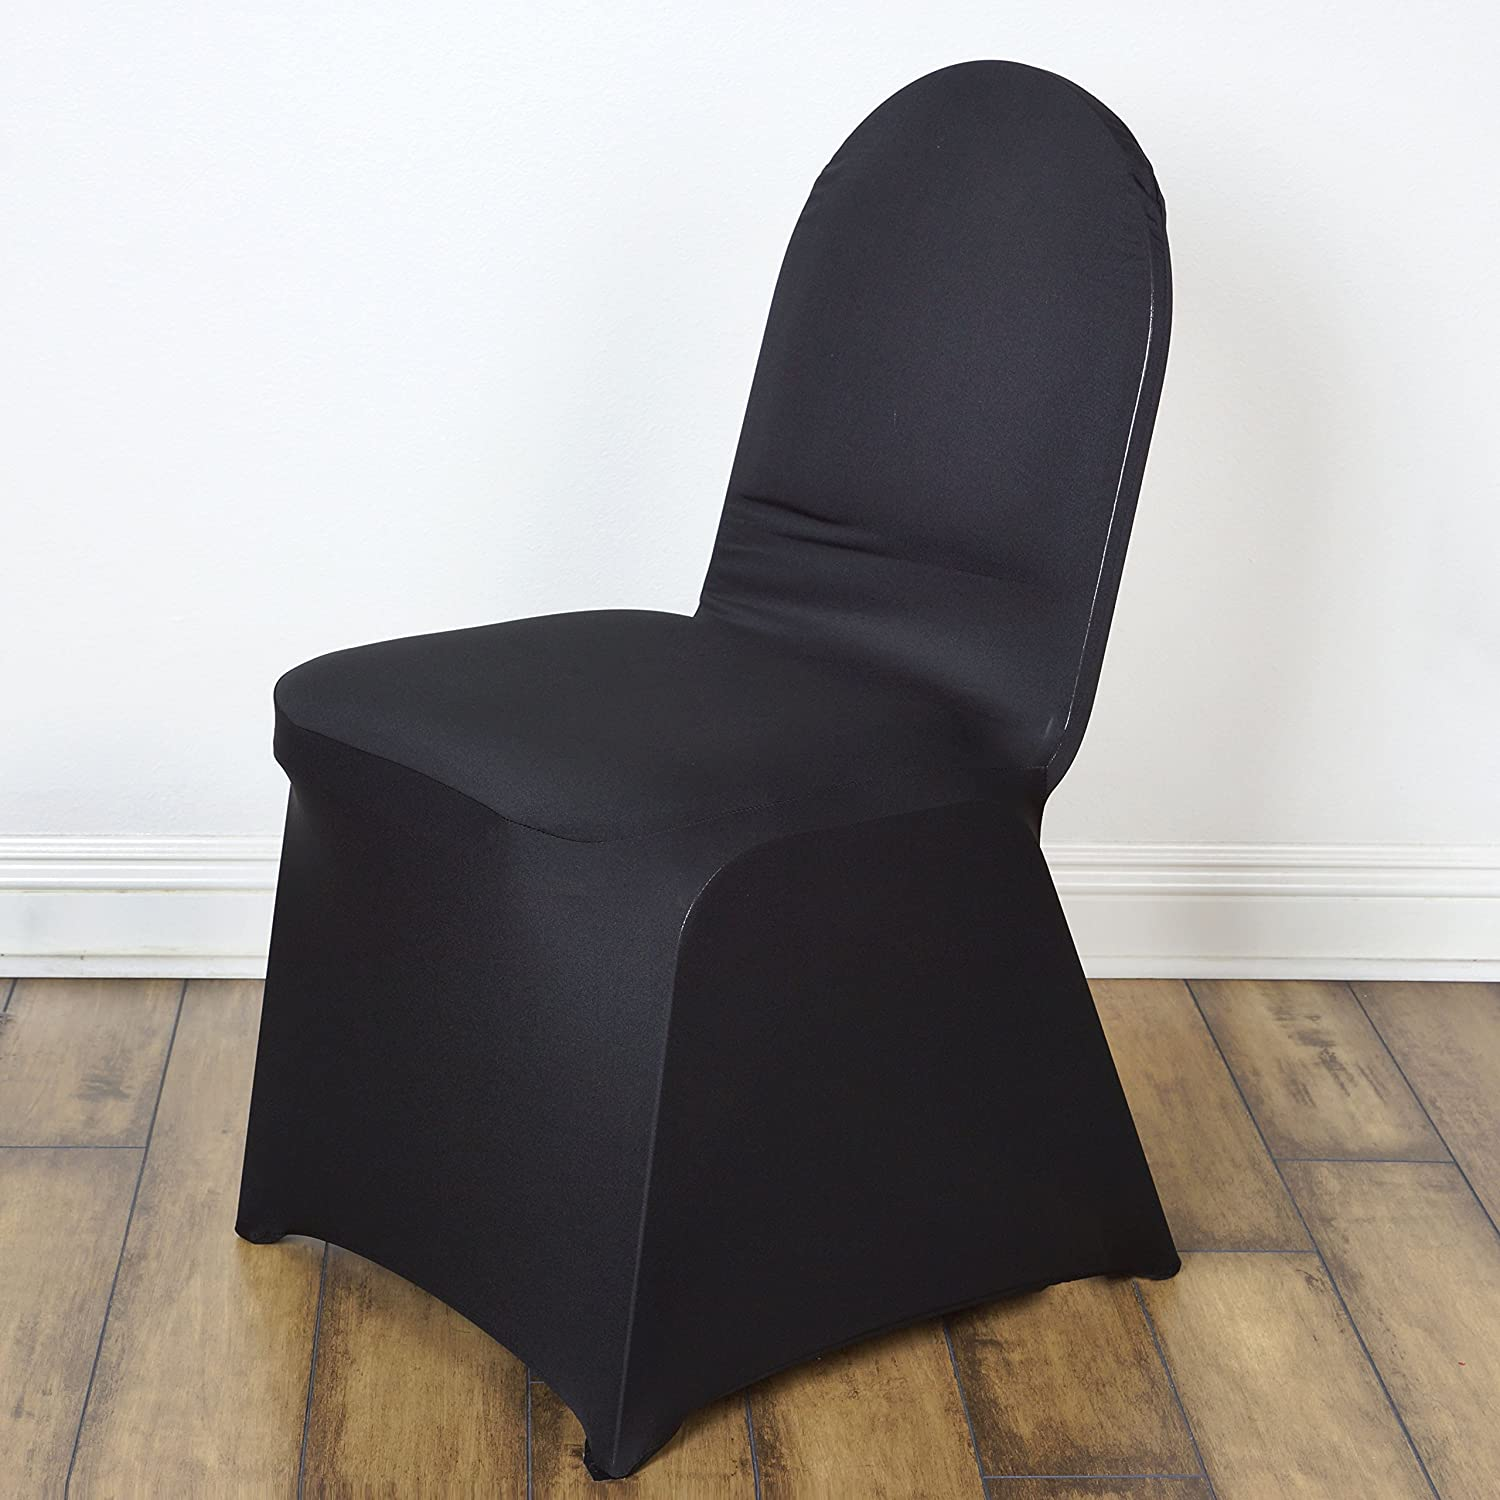 Amazon.com: BalsaCircle 10 Pcs Black Spandex Strechable Banquet Chair  Covers Slipcovers For Wedding Party Reception Decorations: Home U0026 Kitchen